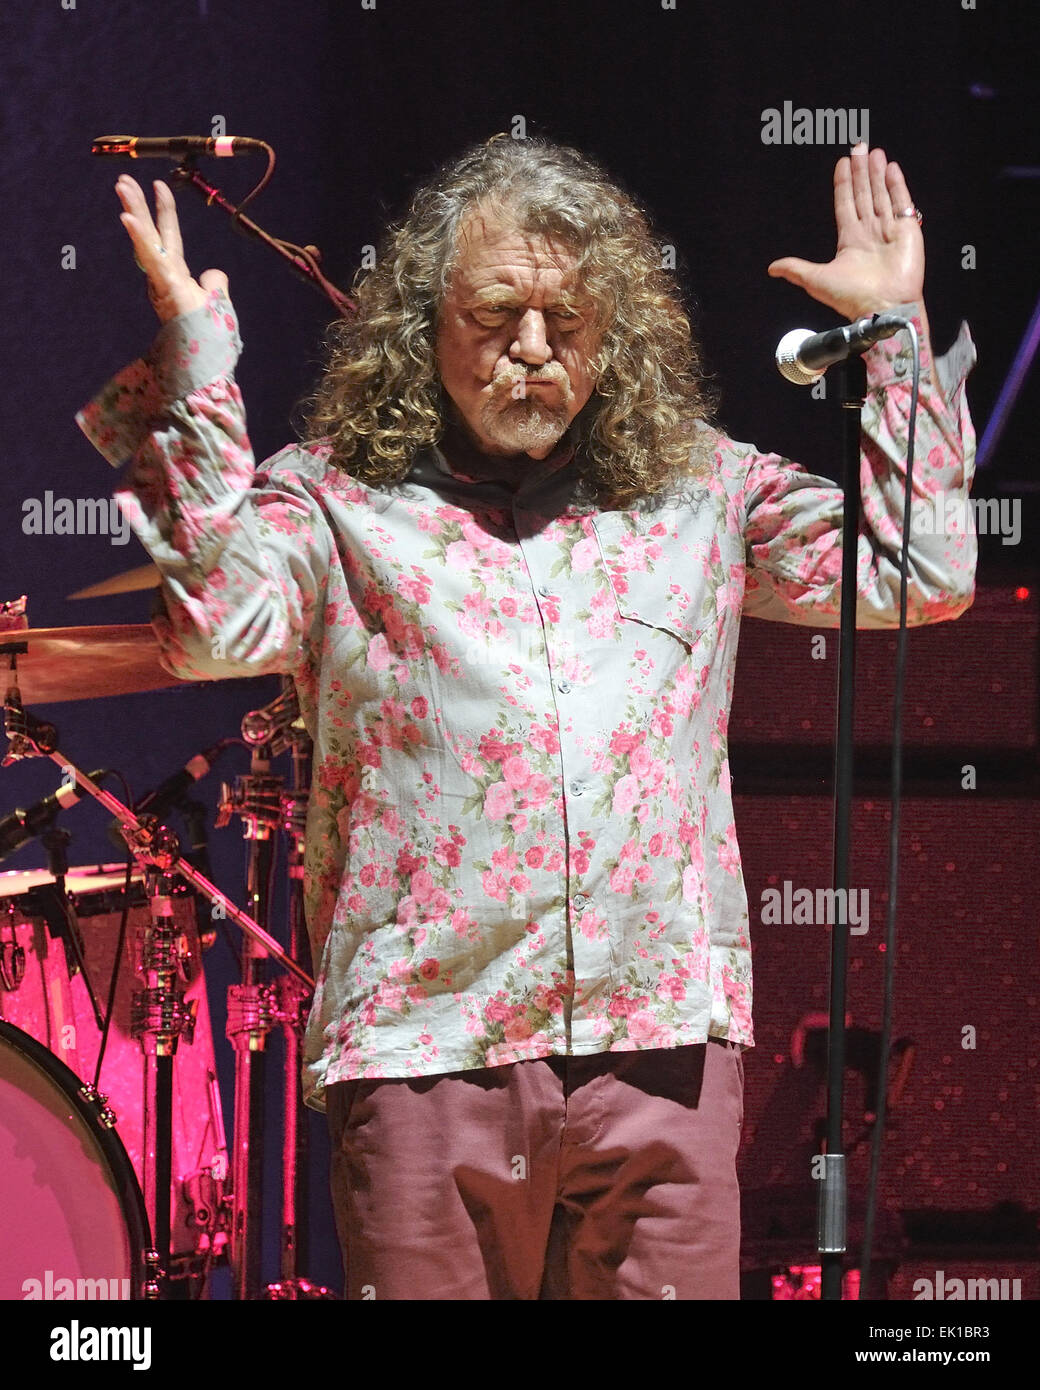 Robert Plant And The Sensational Space Shifters perform at Massey Hall. Featuring: Robert Plant Where: New York - Stock Image